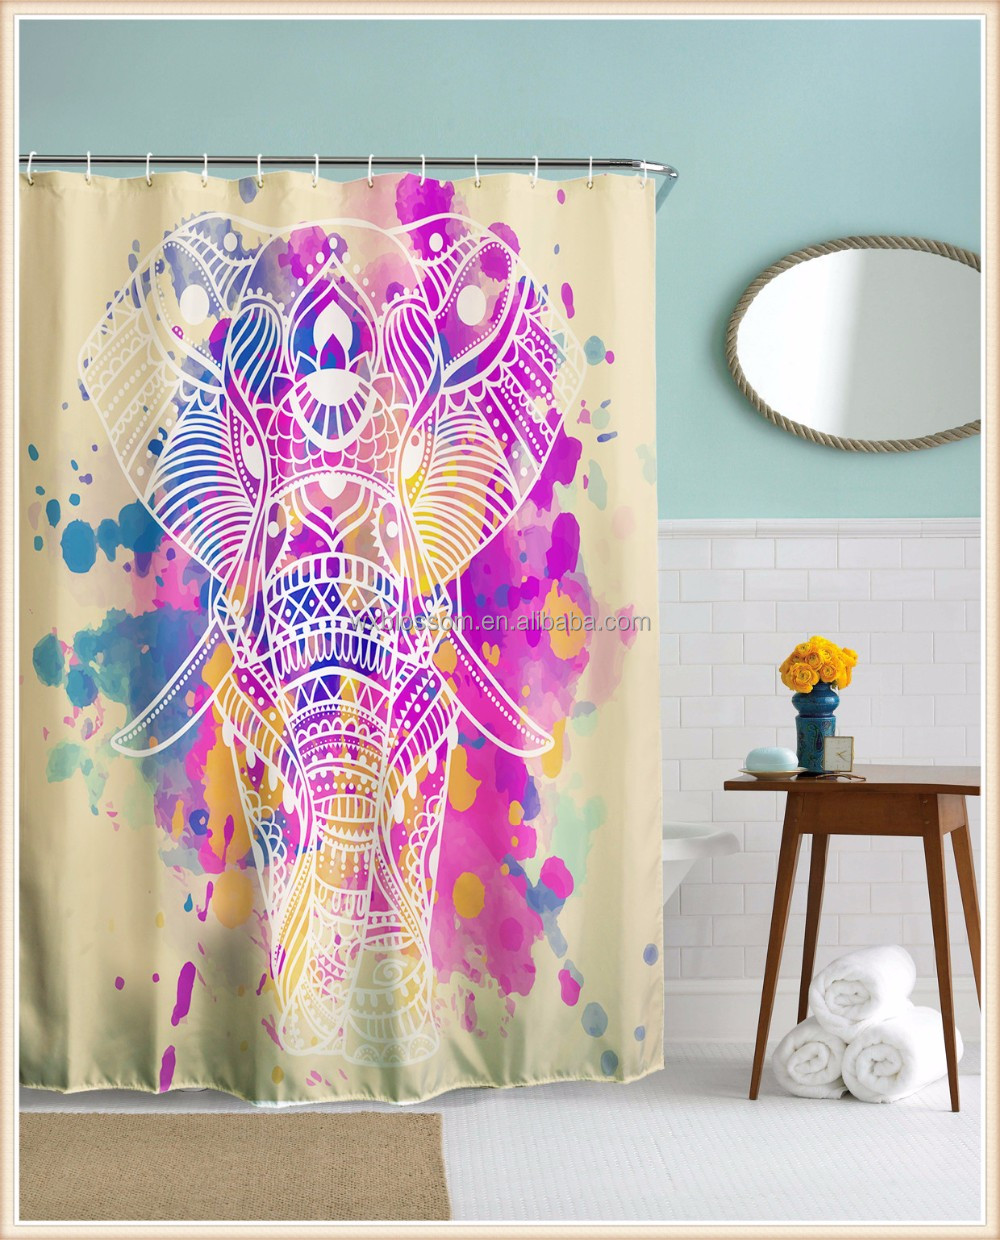 Luxury digital printed polyester showeroom hanging curtain